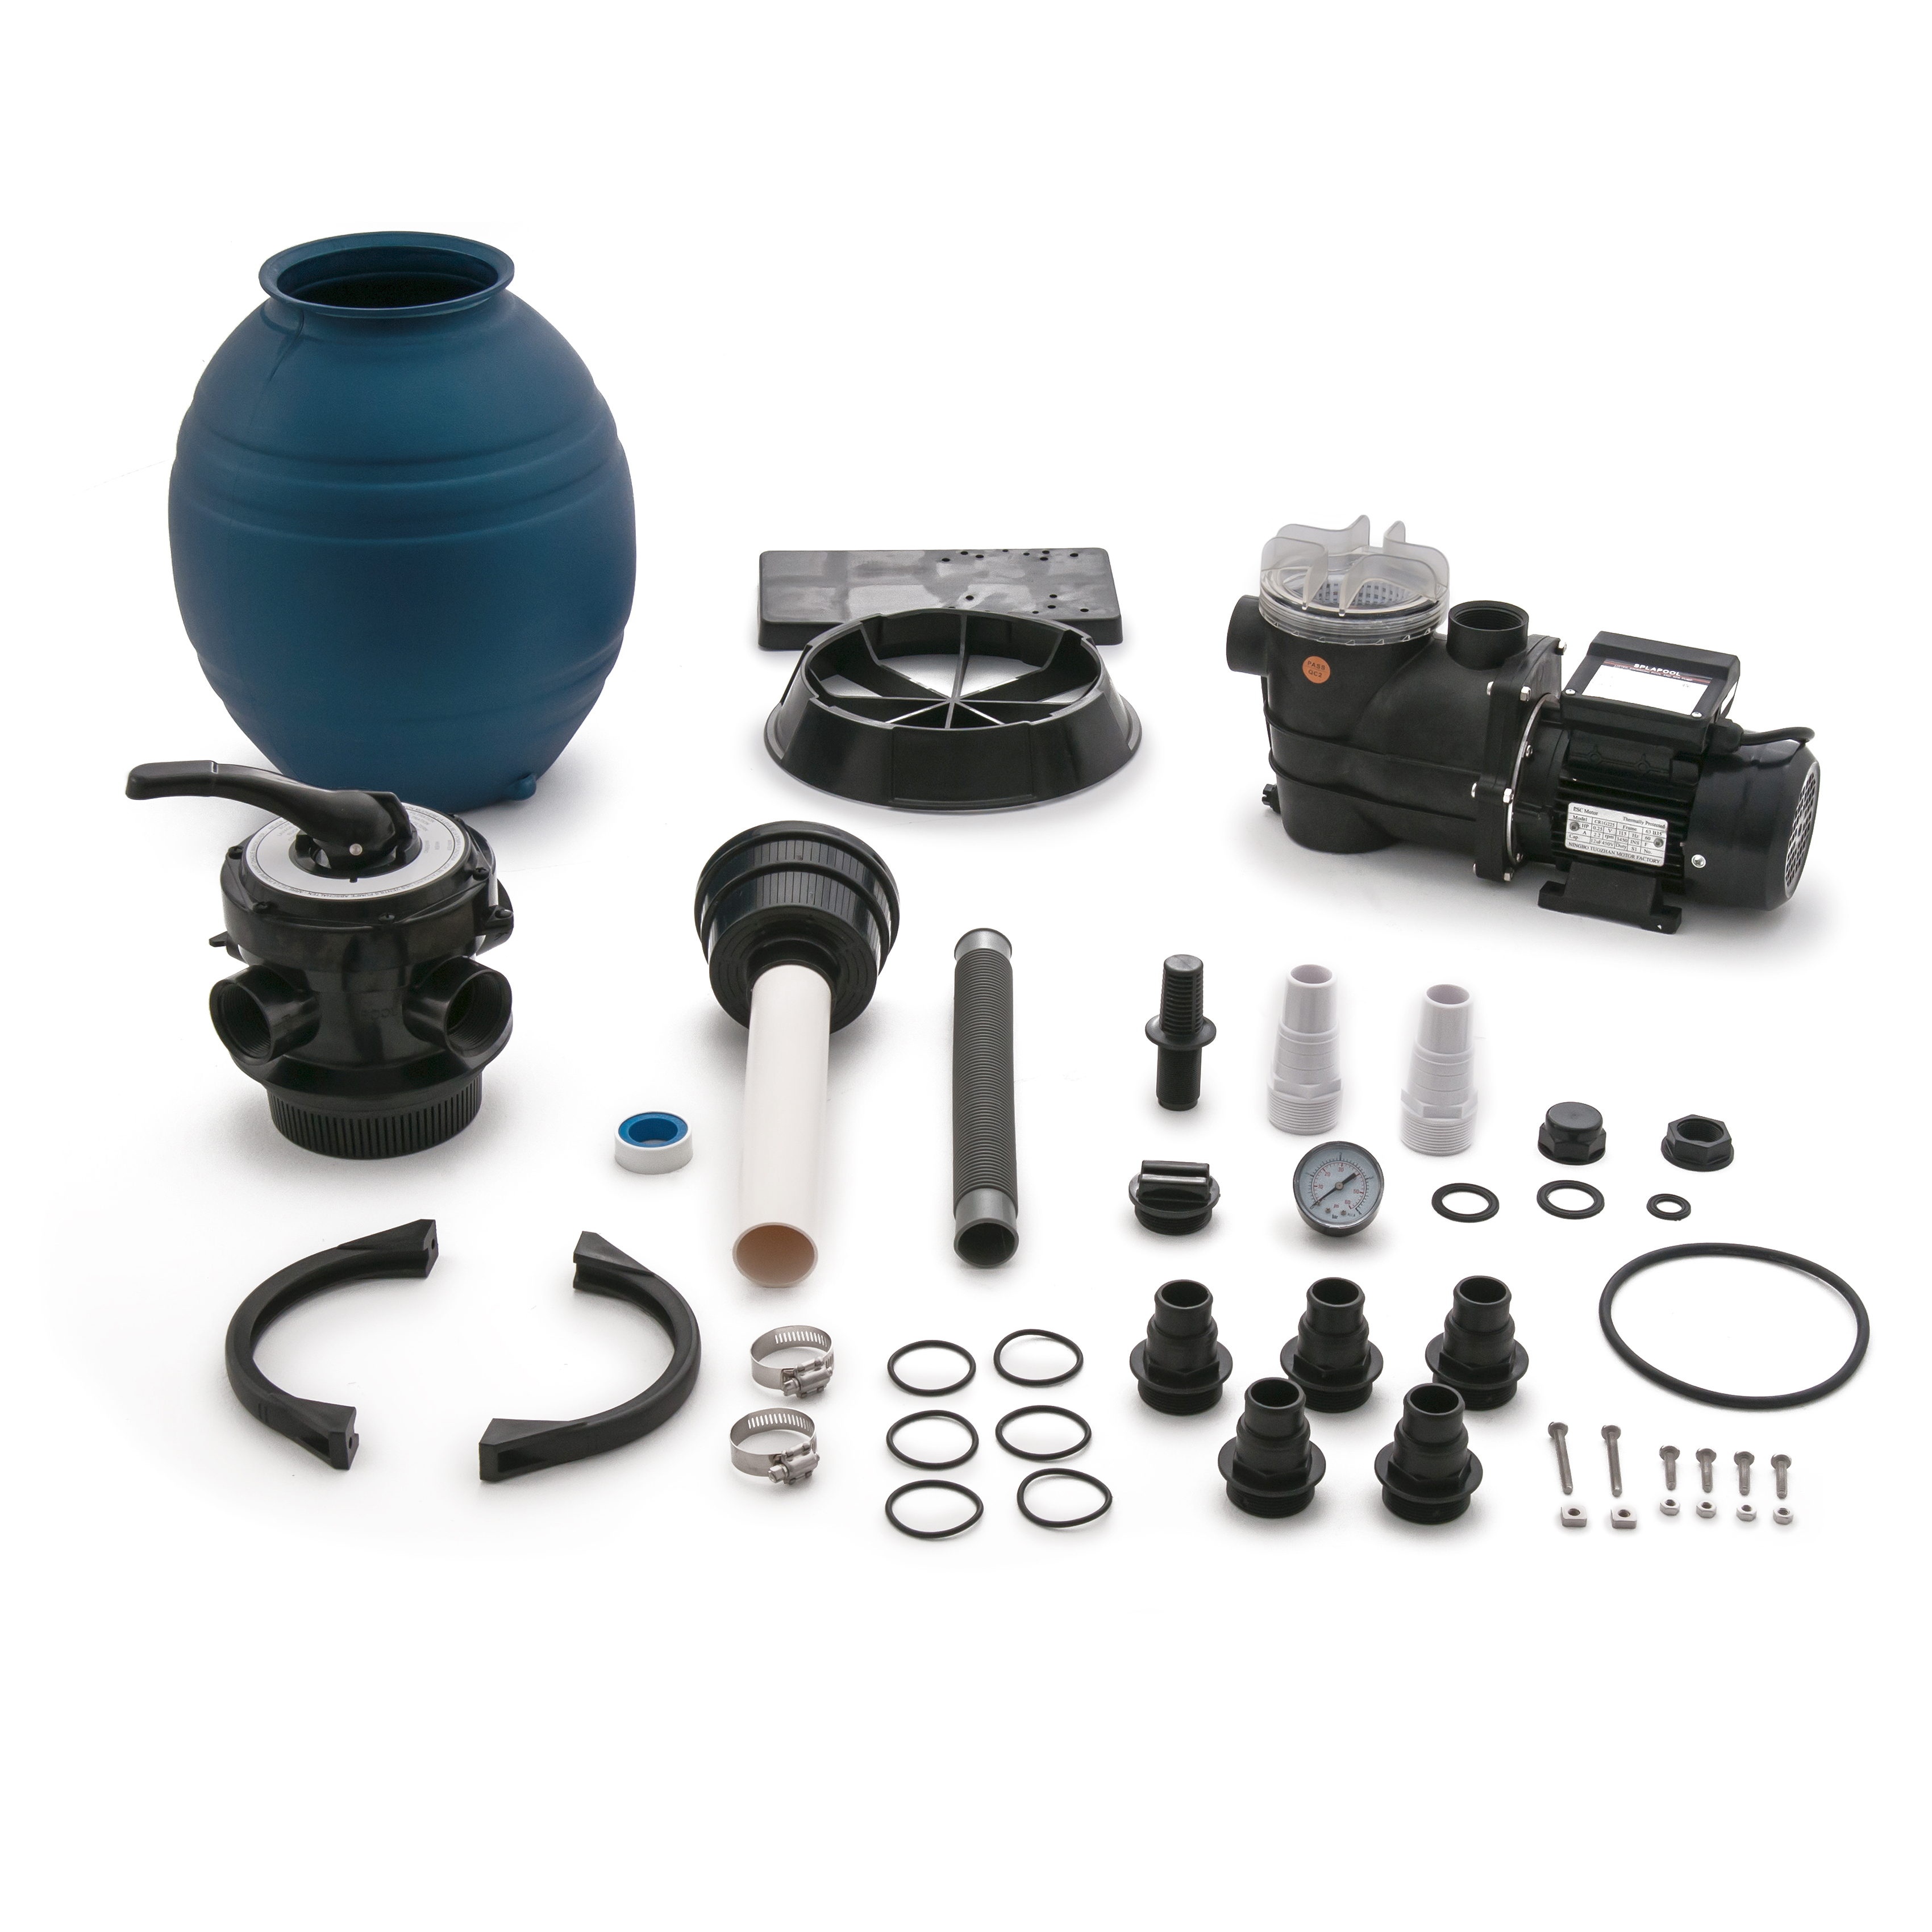 Oceania-C740010-Above-Ground-Pool-Filter-and-Pump-